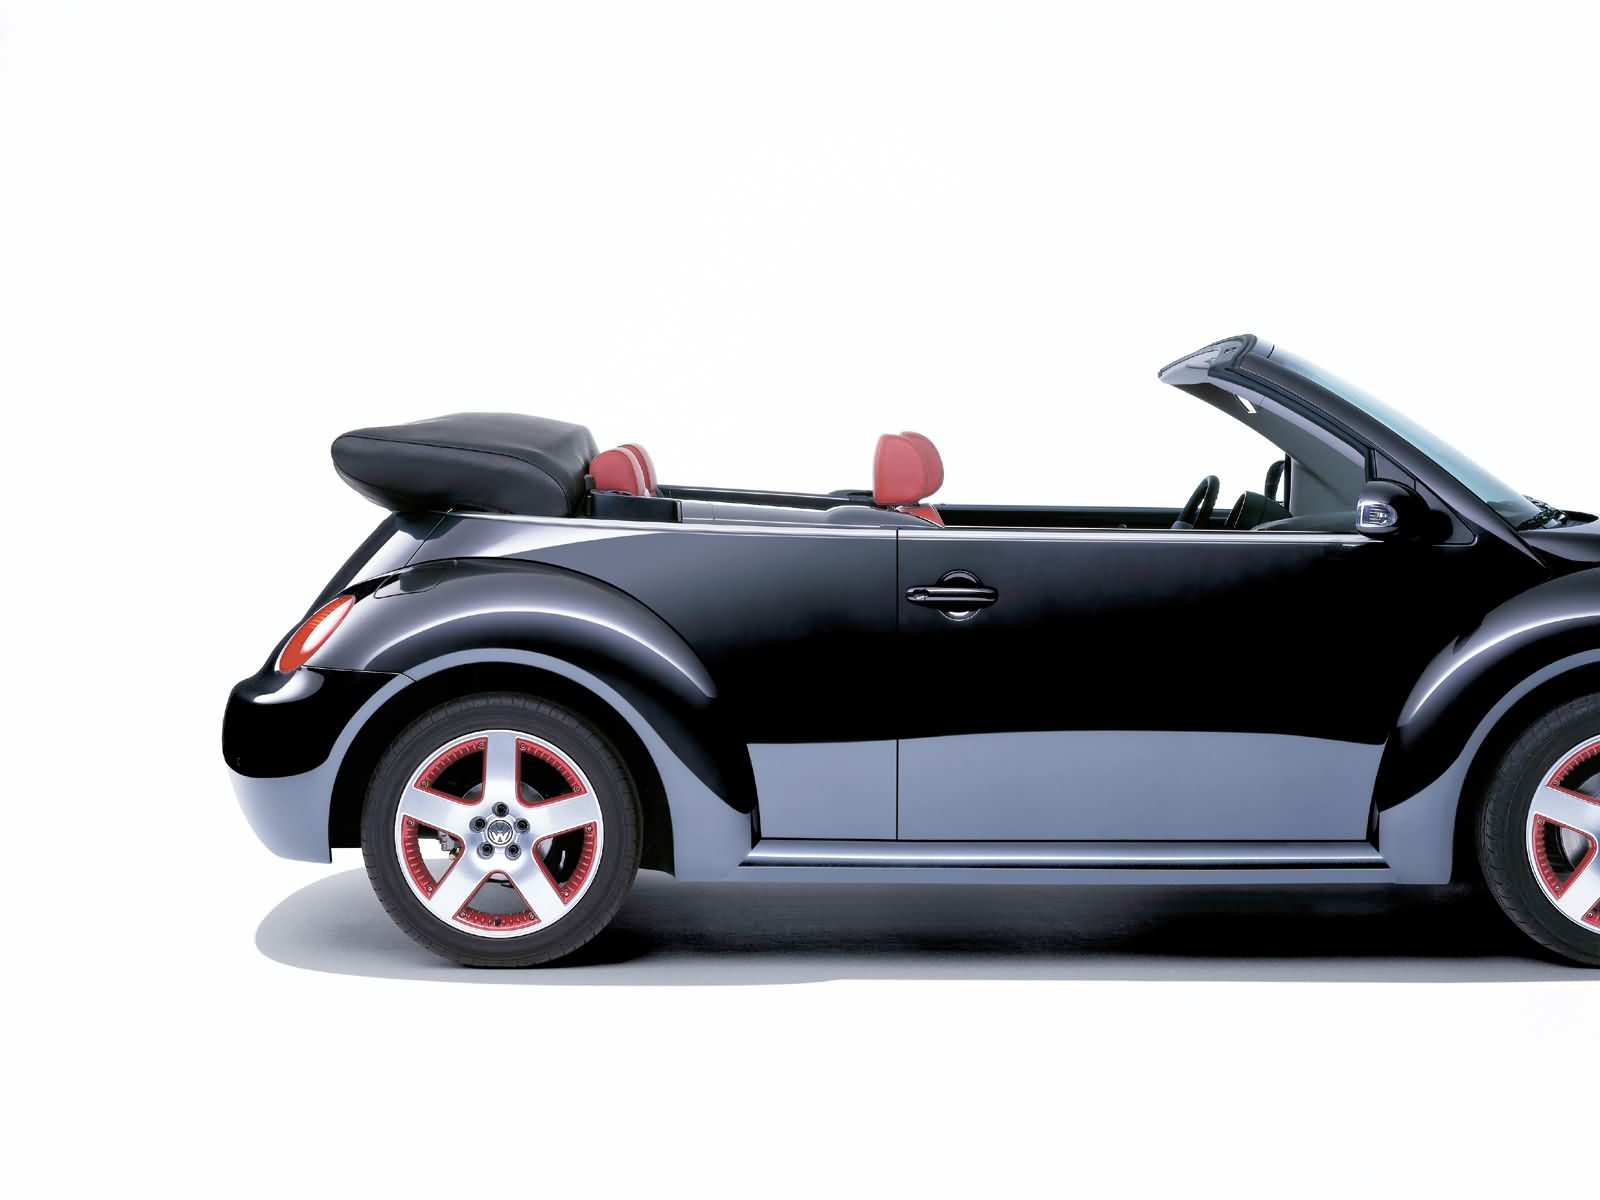 volkswagen new beetle cabriolet photos photogallery with 51 pics. Black Bedroom Furniture Sets. Home Design Ideas